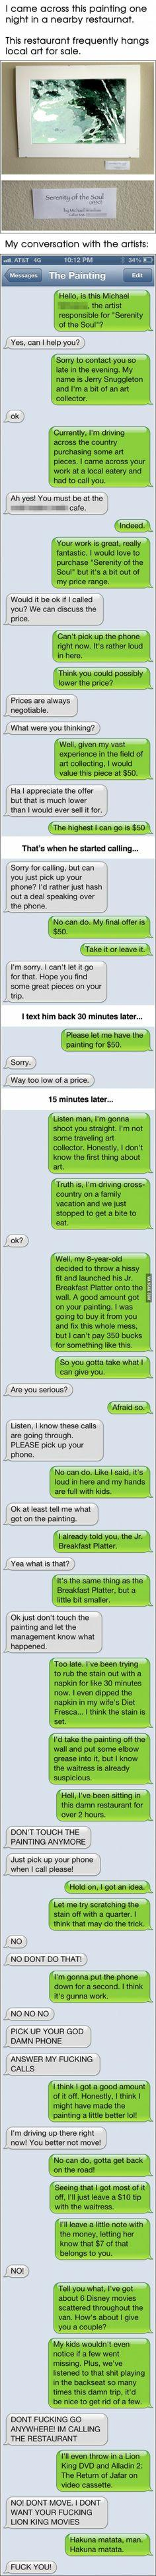 Next Time When You Post Your Phone Number In A Public Place, Think Again.: Funny Texts, Giggle, Text Prank, Funny Stuff, Public Place, So Funny, Painting